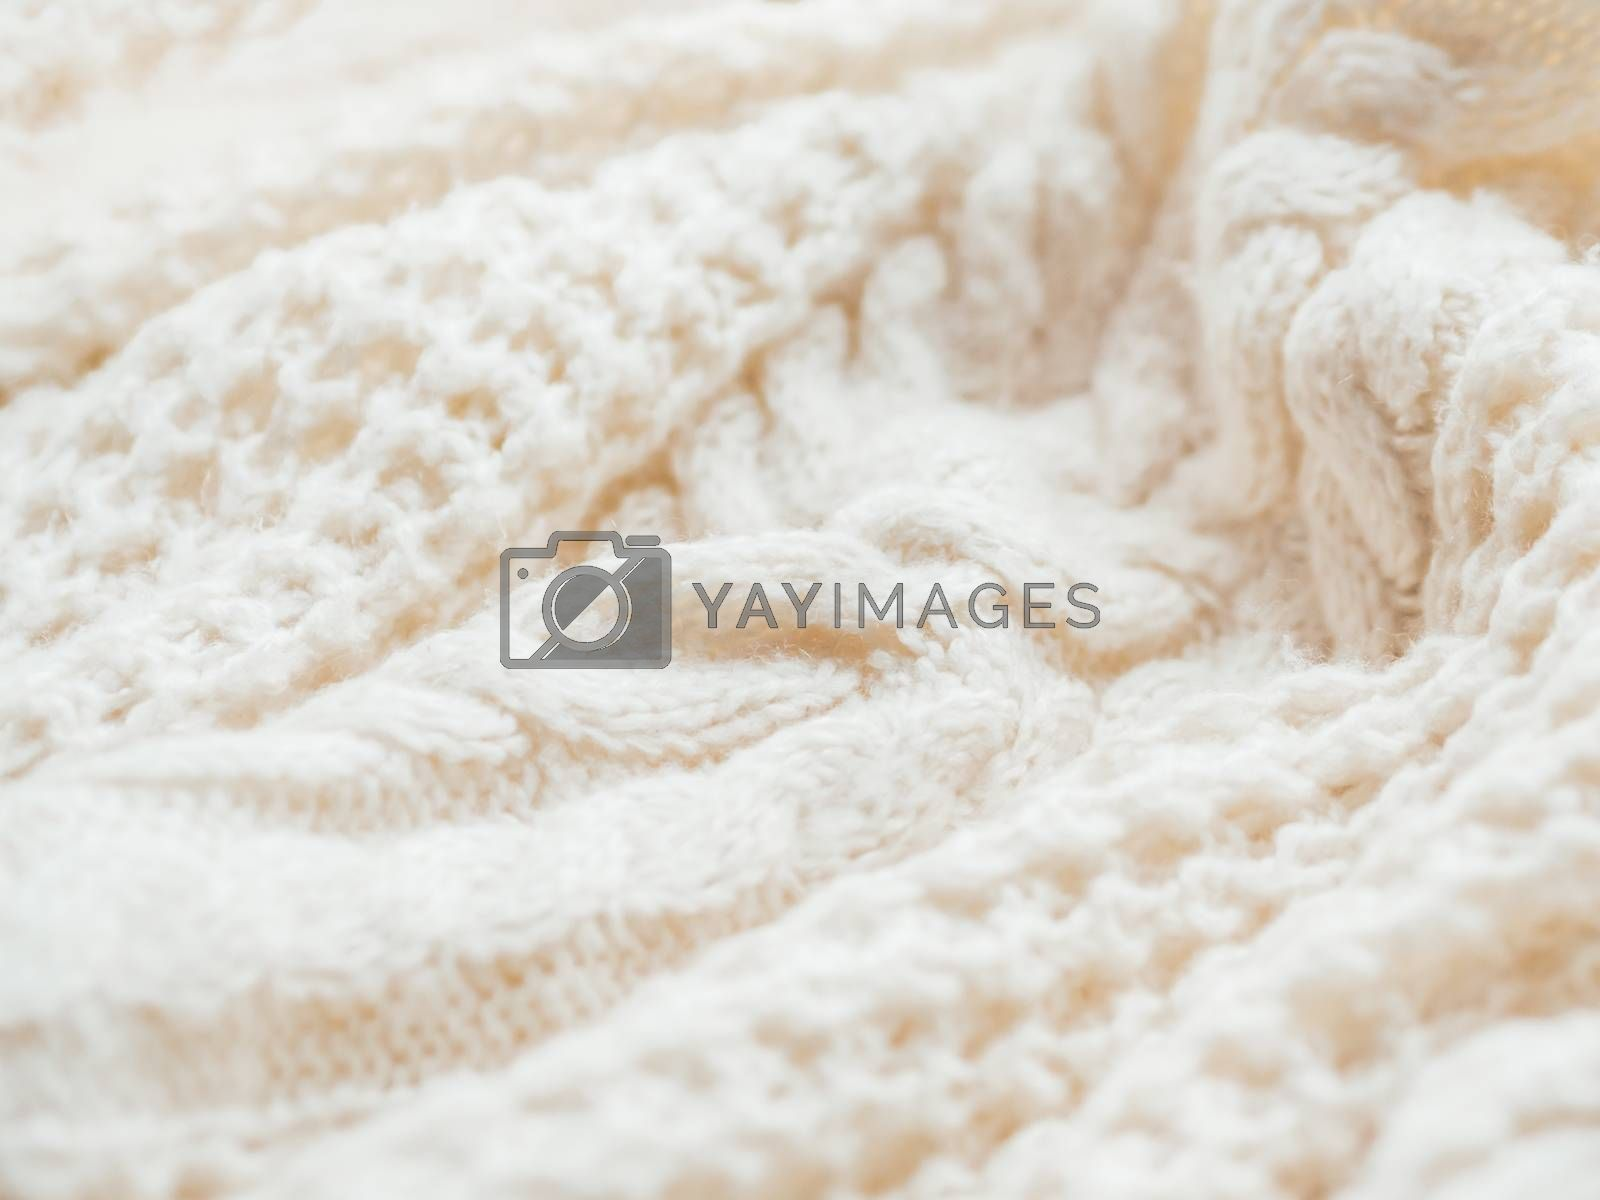 Royalty free image of Hand made cable-knit sweater sweater. Texture of warm knitted fa by aksenovko